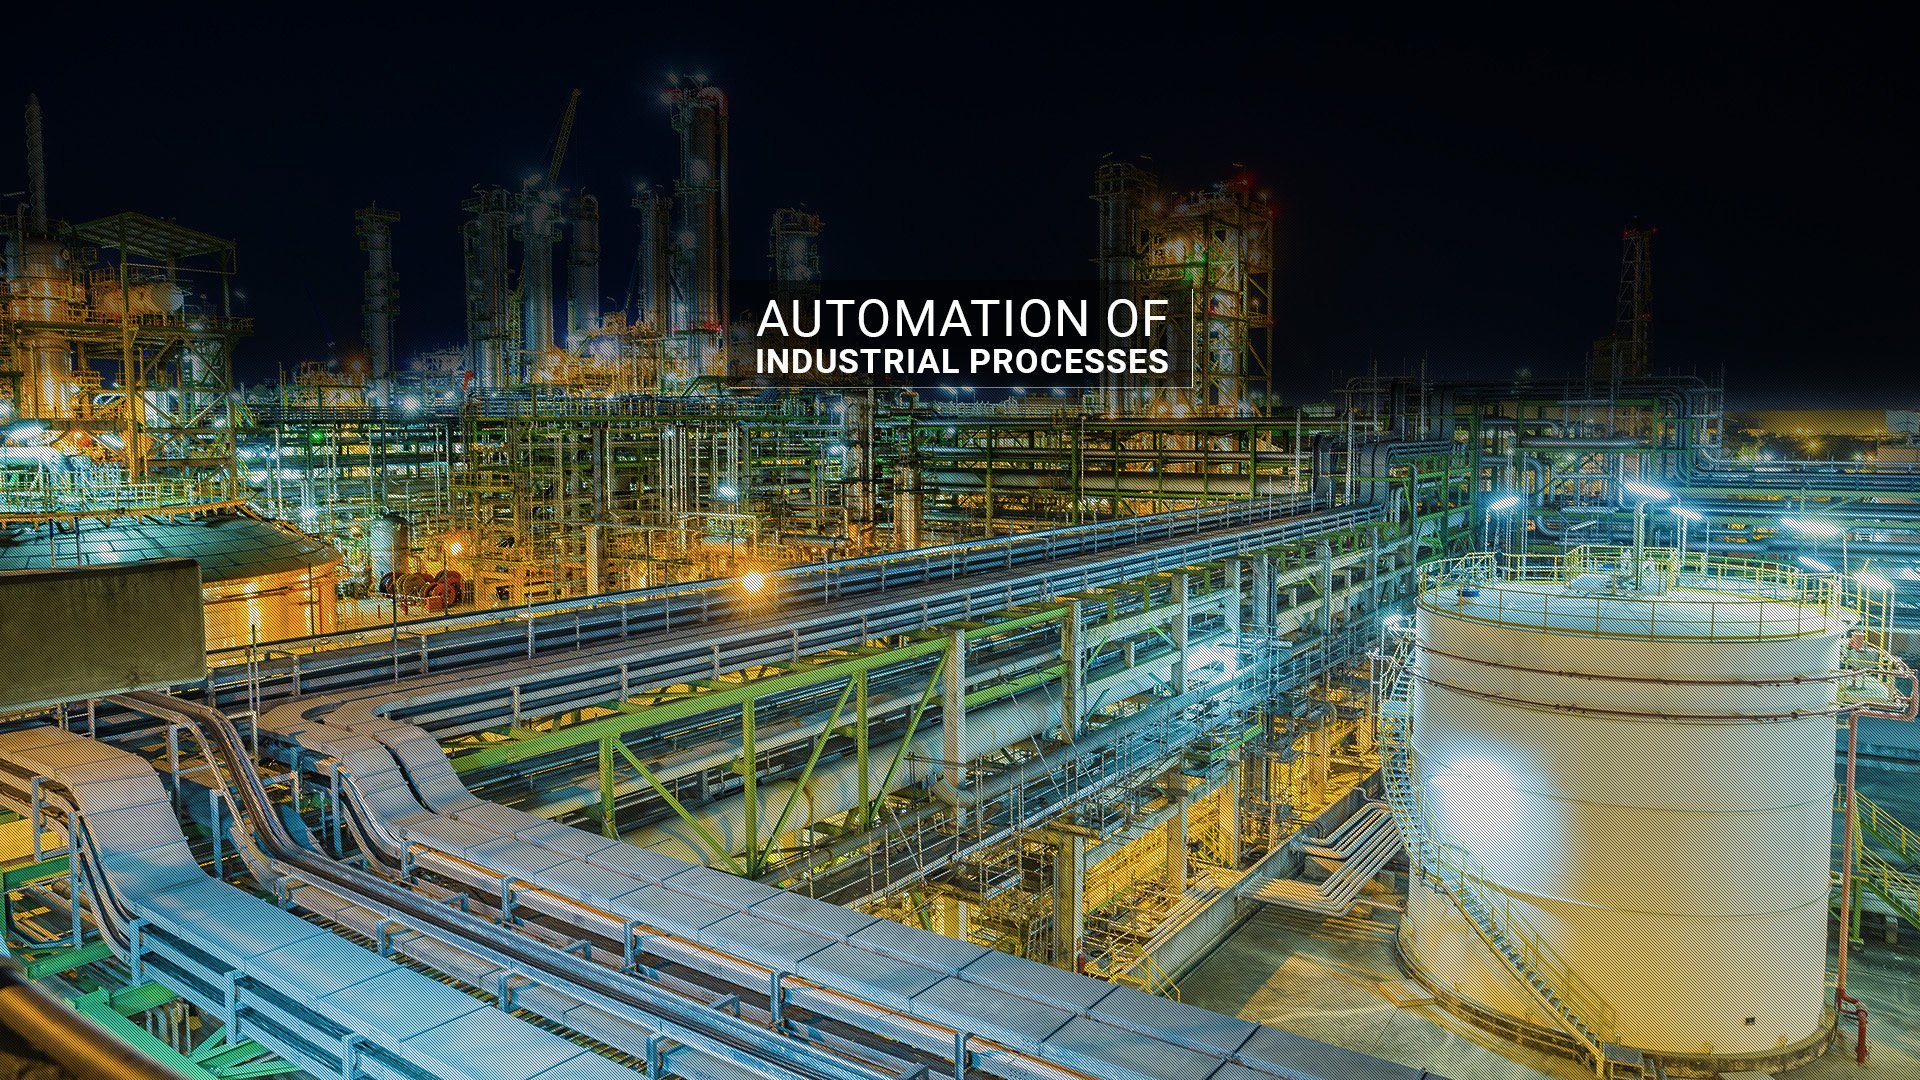 Automation of Industrial Processes